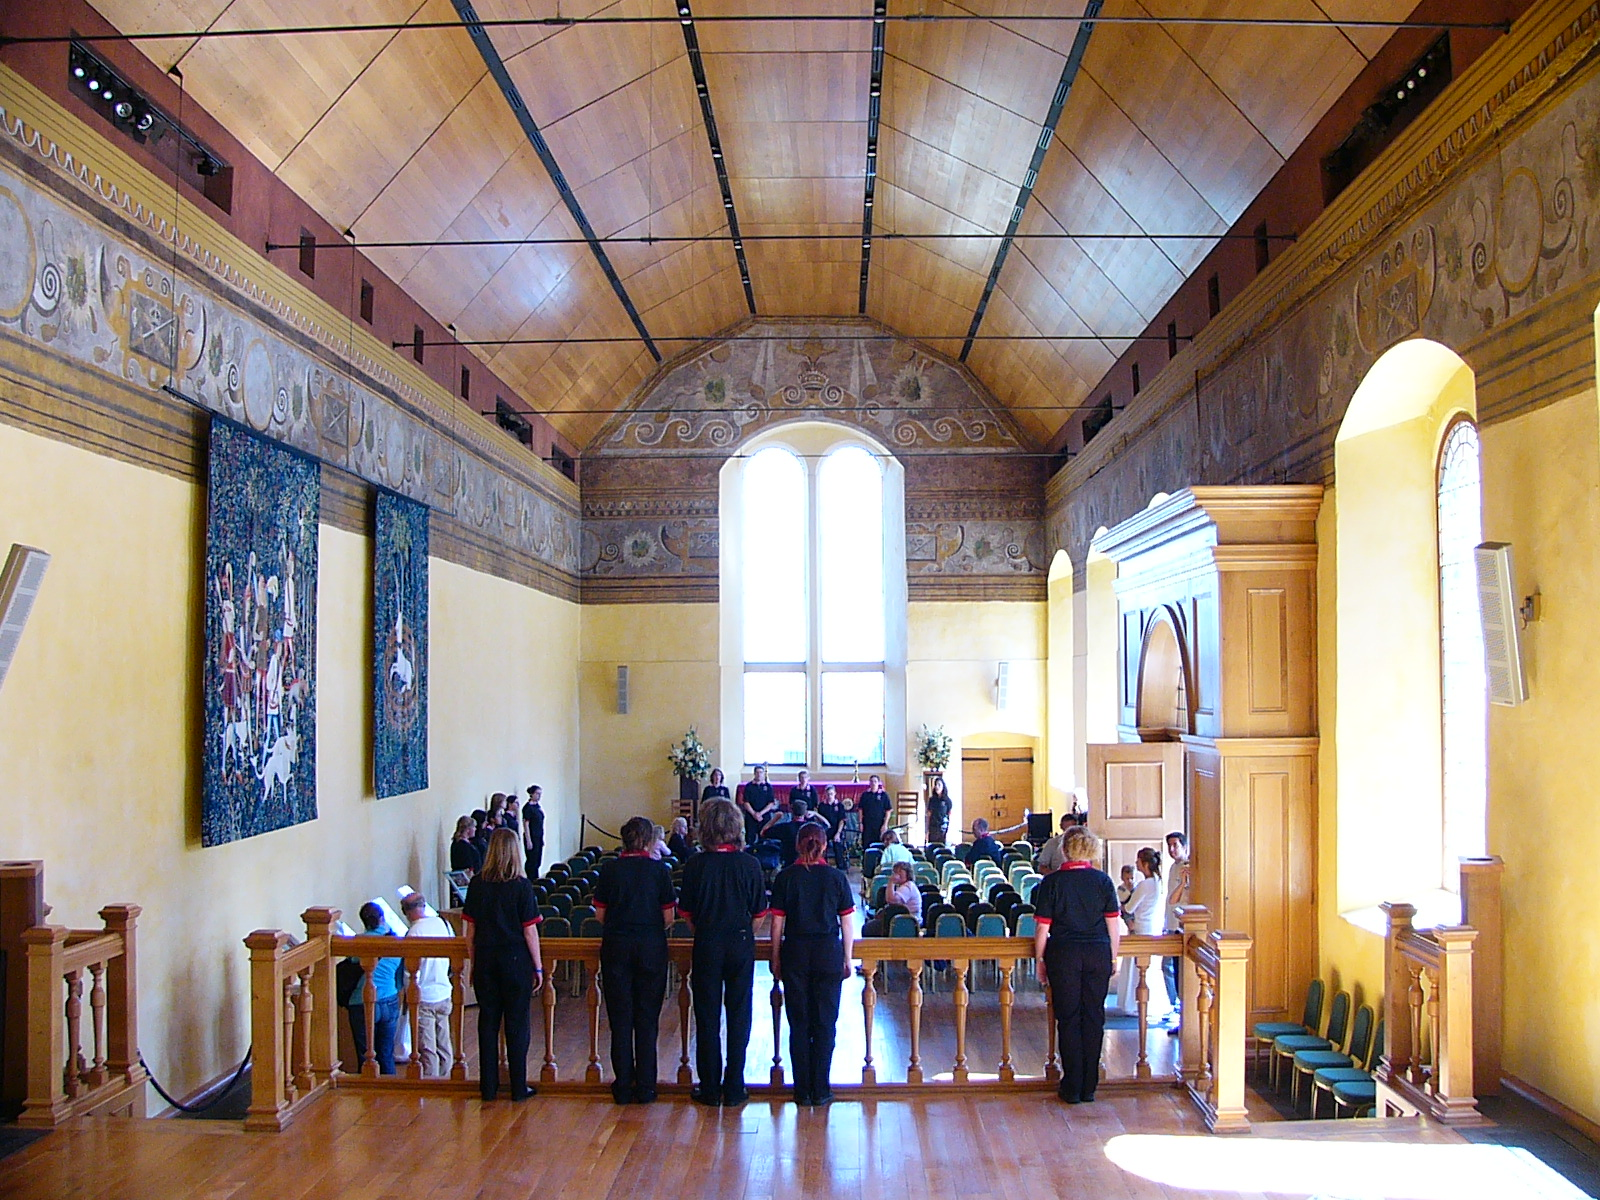 Our rehearsal in the chappel at Stirling Castle.